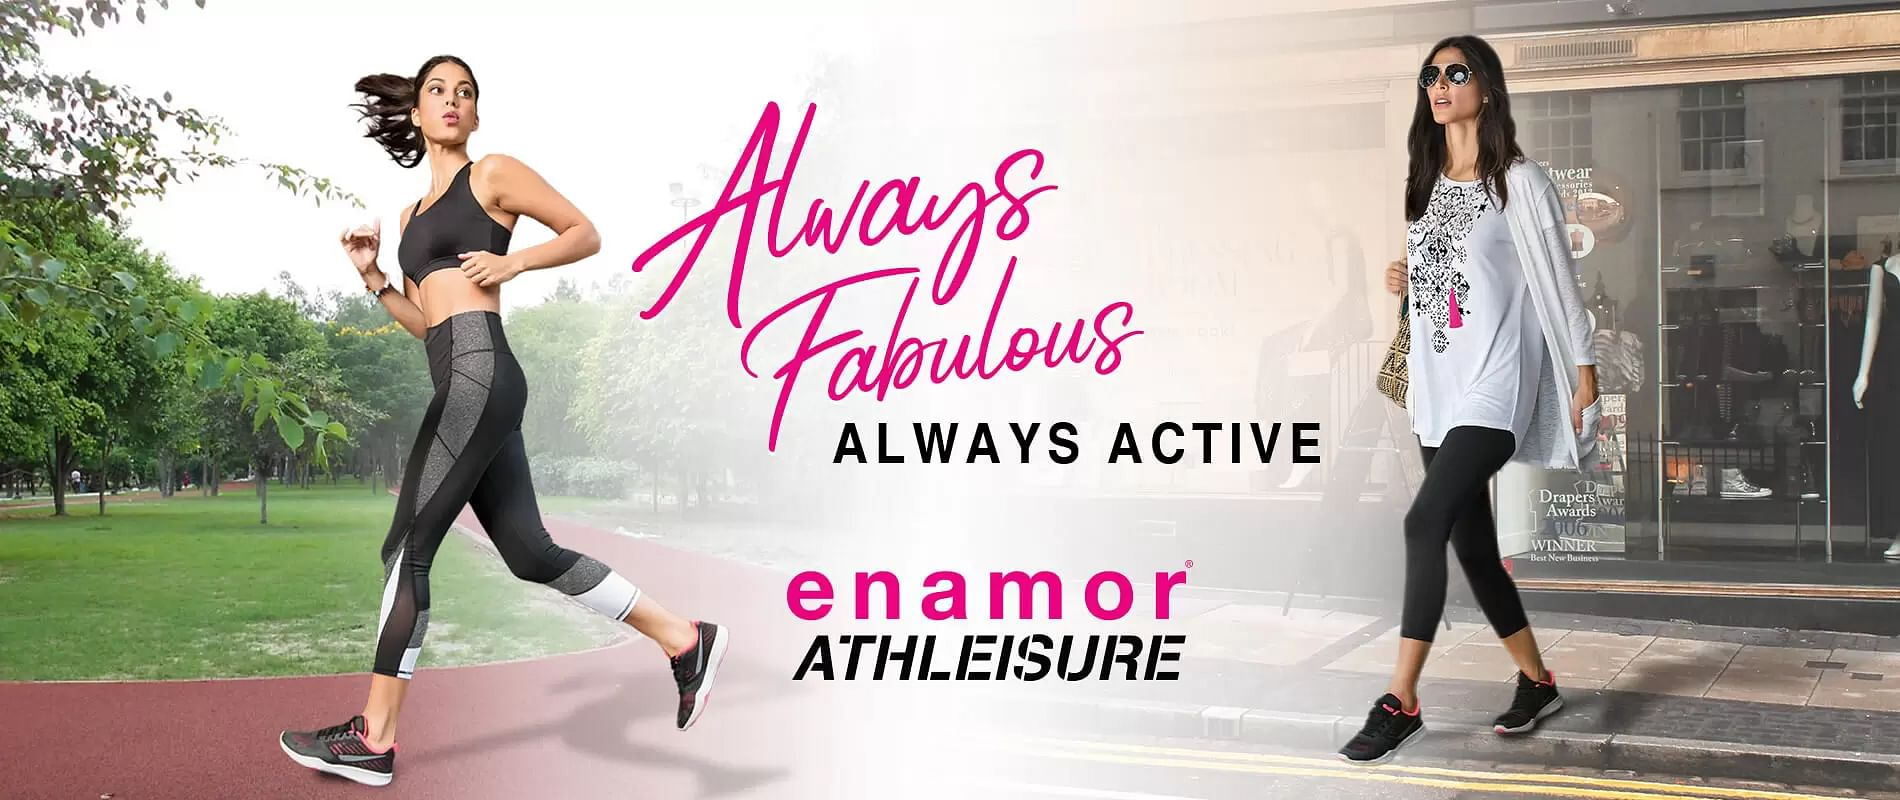 Enamor Athleisure - Always Fabulous Always Active